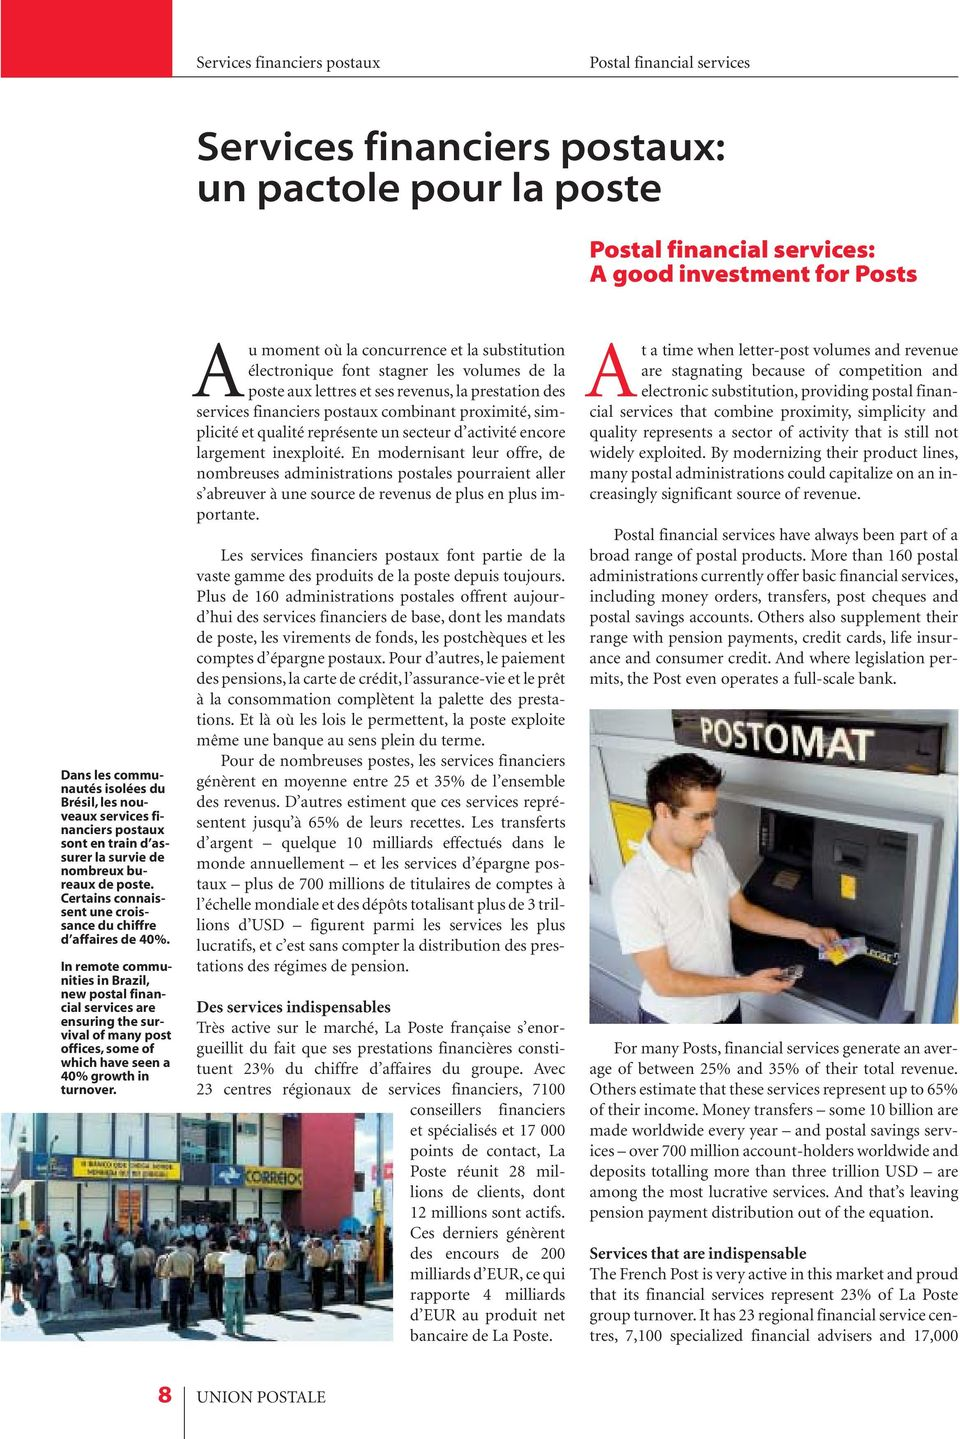 In remote communities in Brazil, new postal financial services are ensuring the survival of many post offices, some of which have seen a 40% growth in turnover.